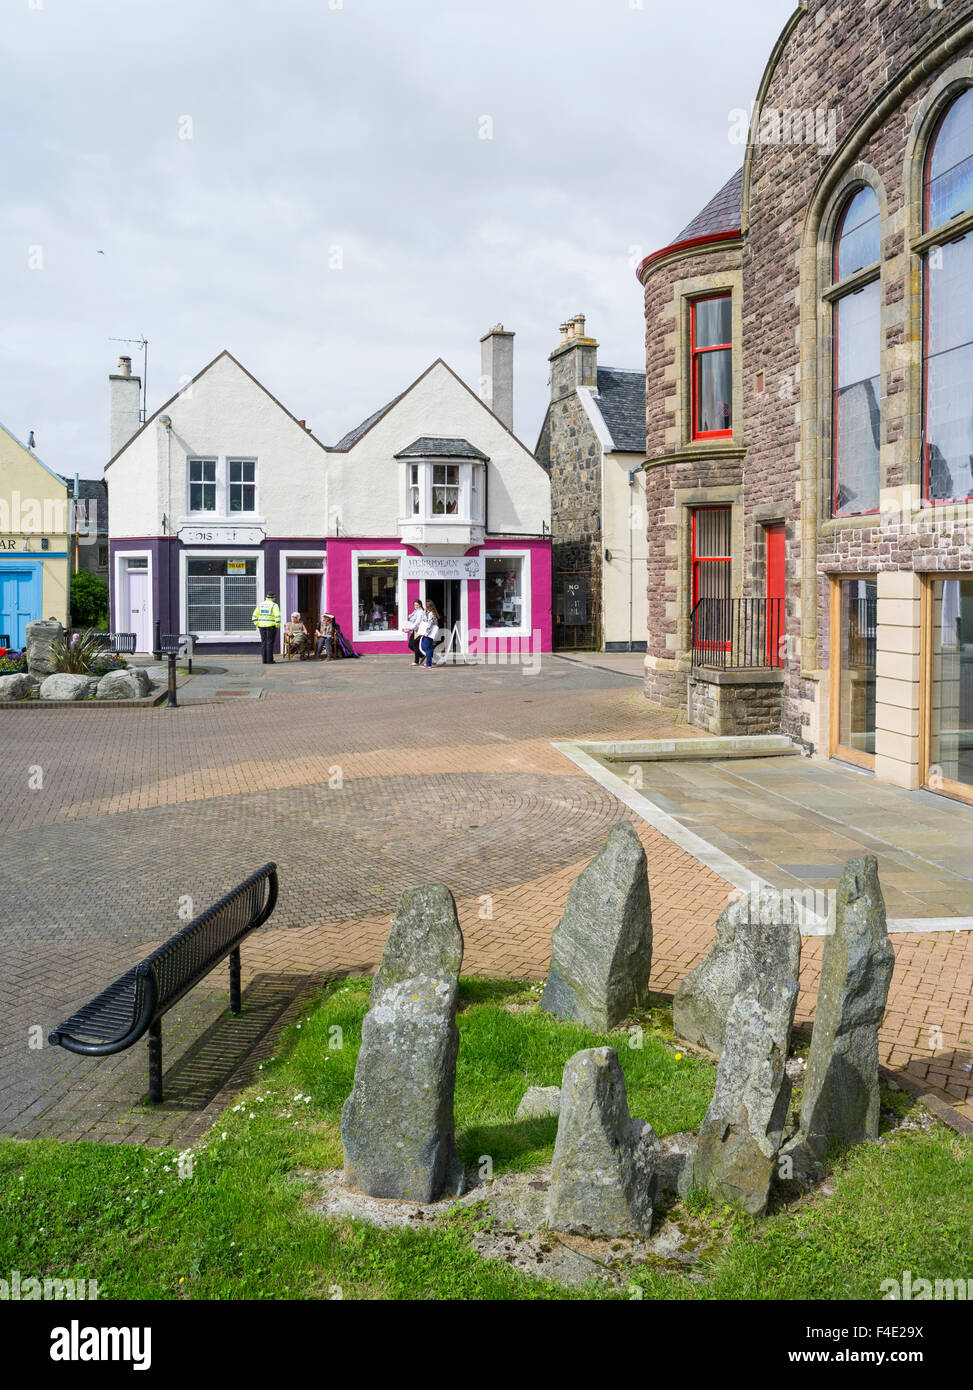 Stornoway, the largest town. Pedestrian area. Europe, Scotland (Large format sizes available) - Stock Image